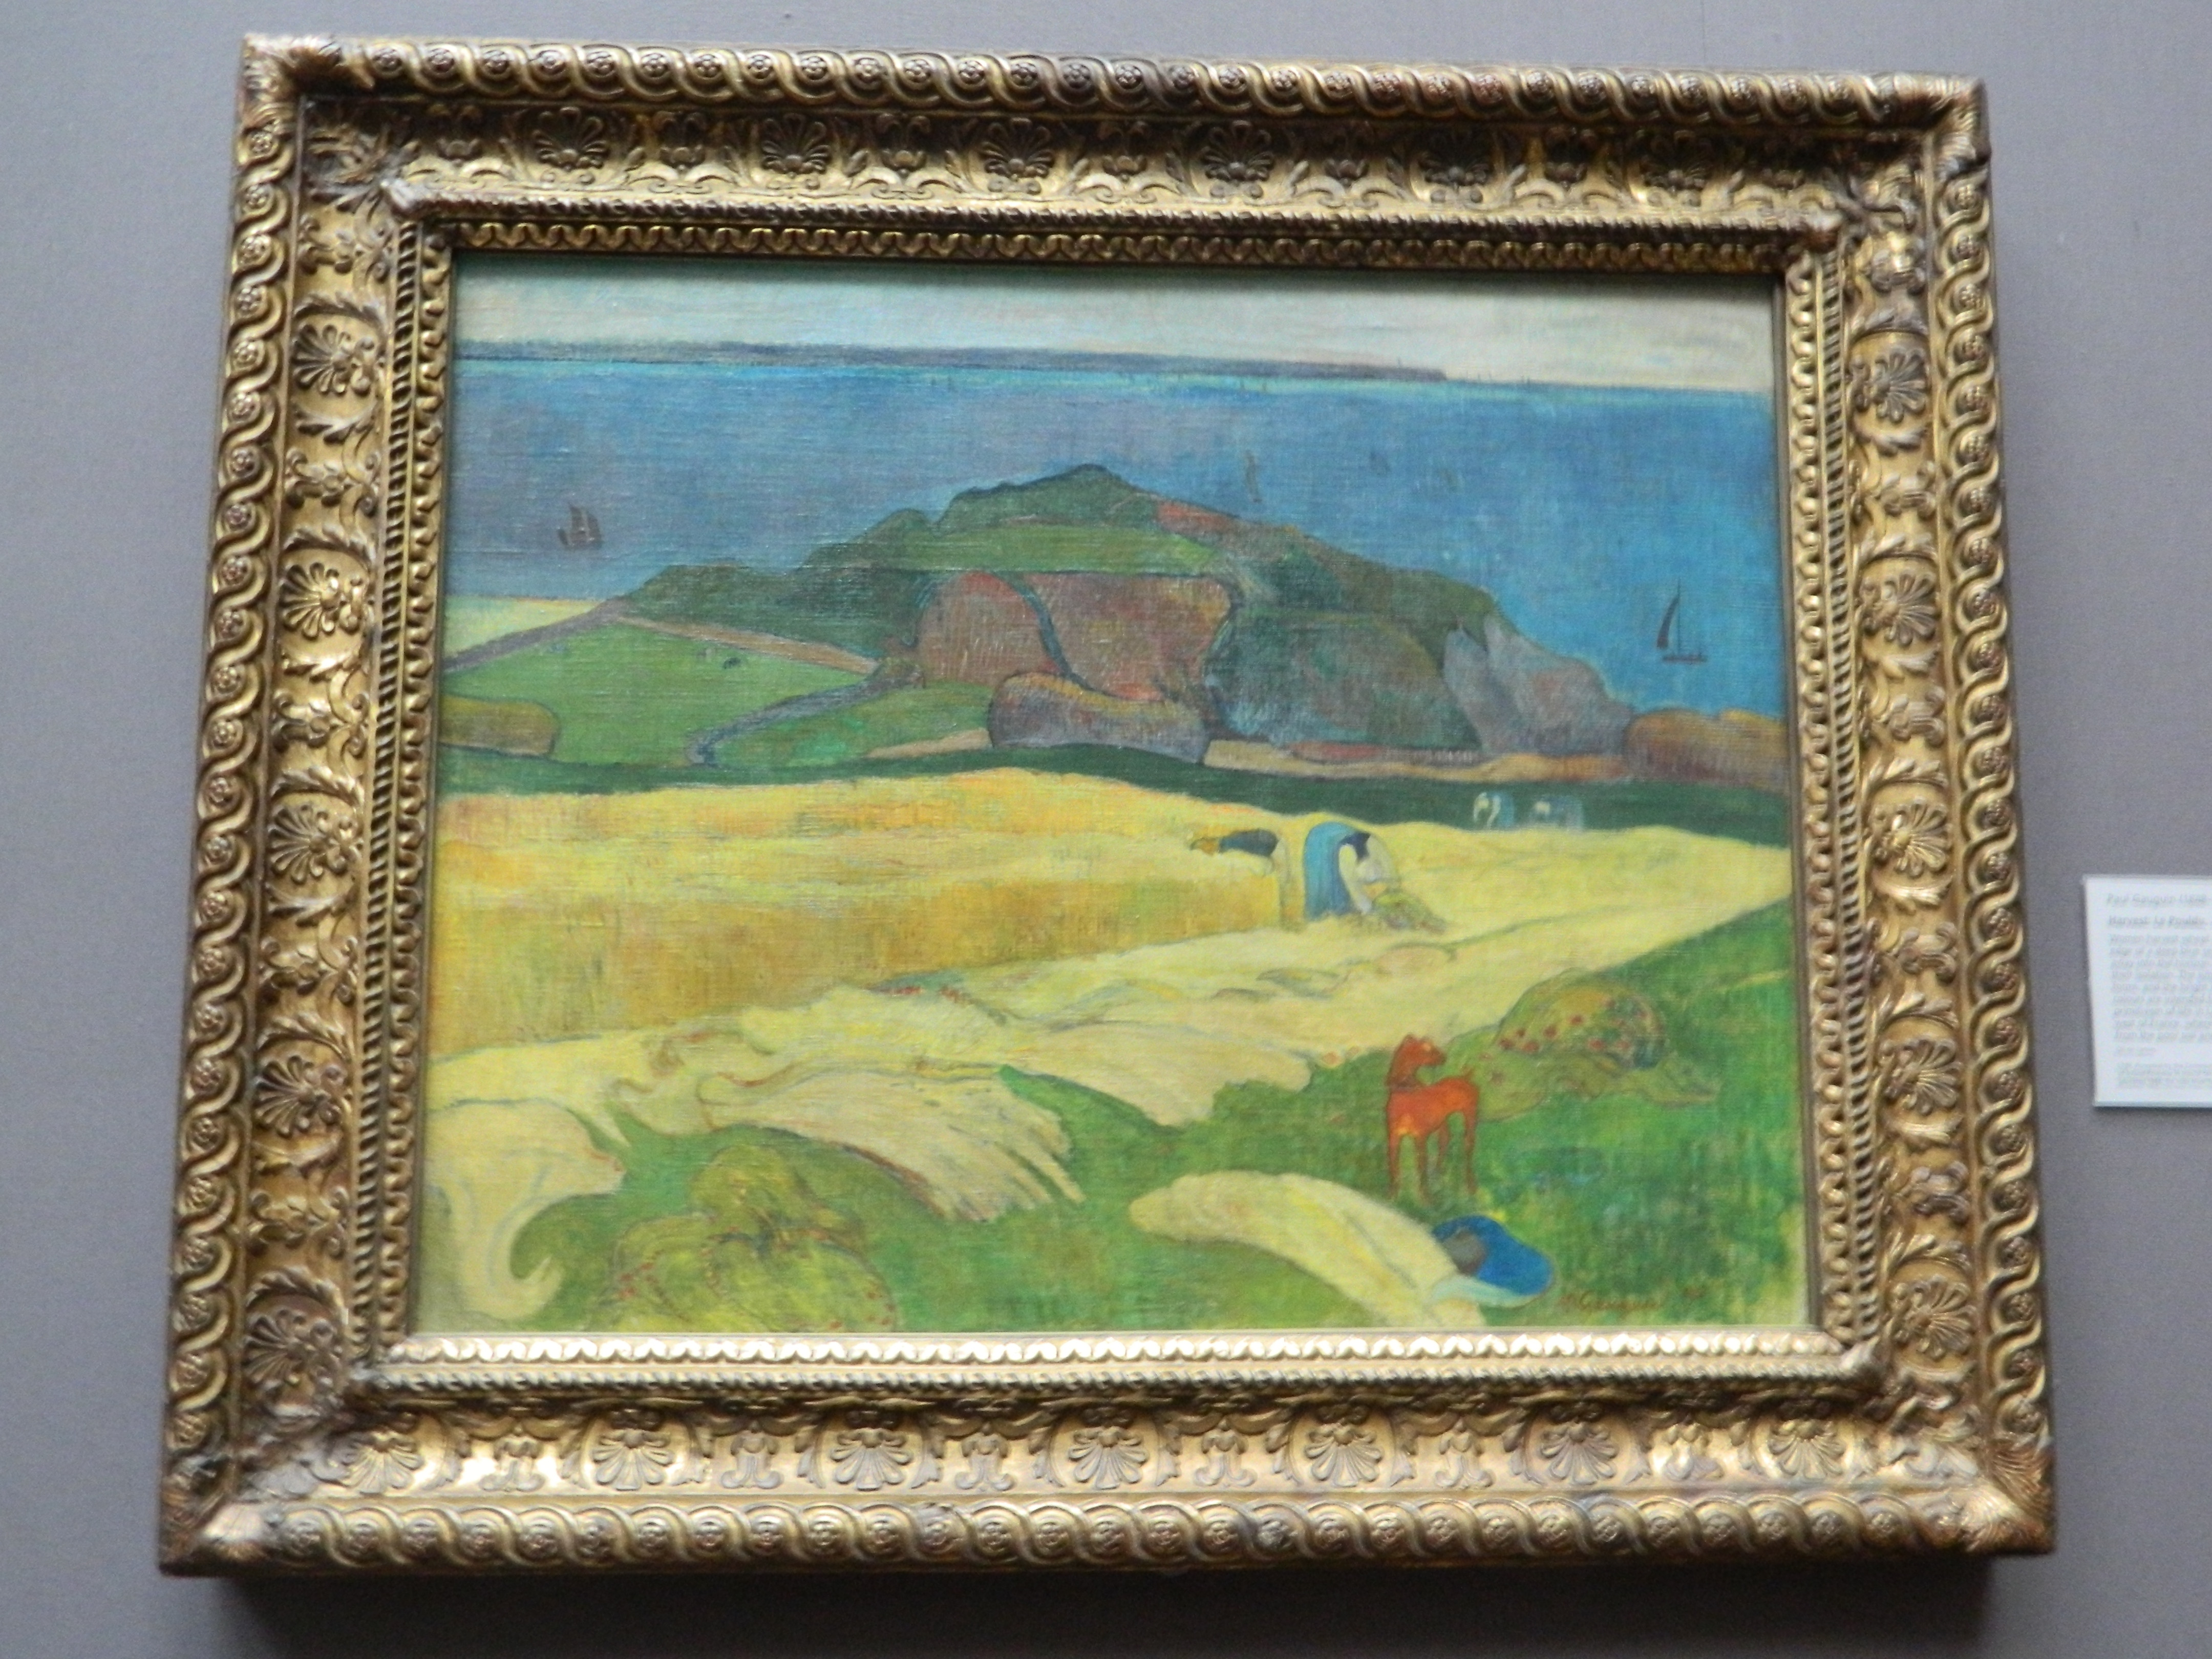 A Vase Of Flowers by Paul Gauguin Of September 2014 Modern and Contemporary Fine Art In London with Regard to the First Of Gauguins Paintings that We Looked at This Week Was His Harvest Le Pouldu the First Thing that We Noticed when Looking at the Painting is that